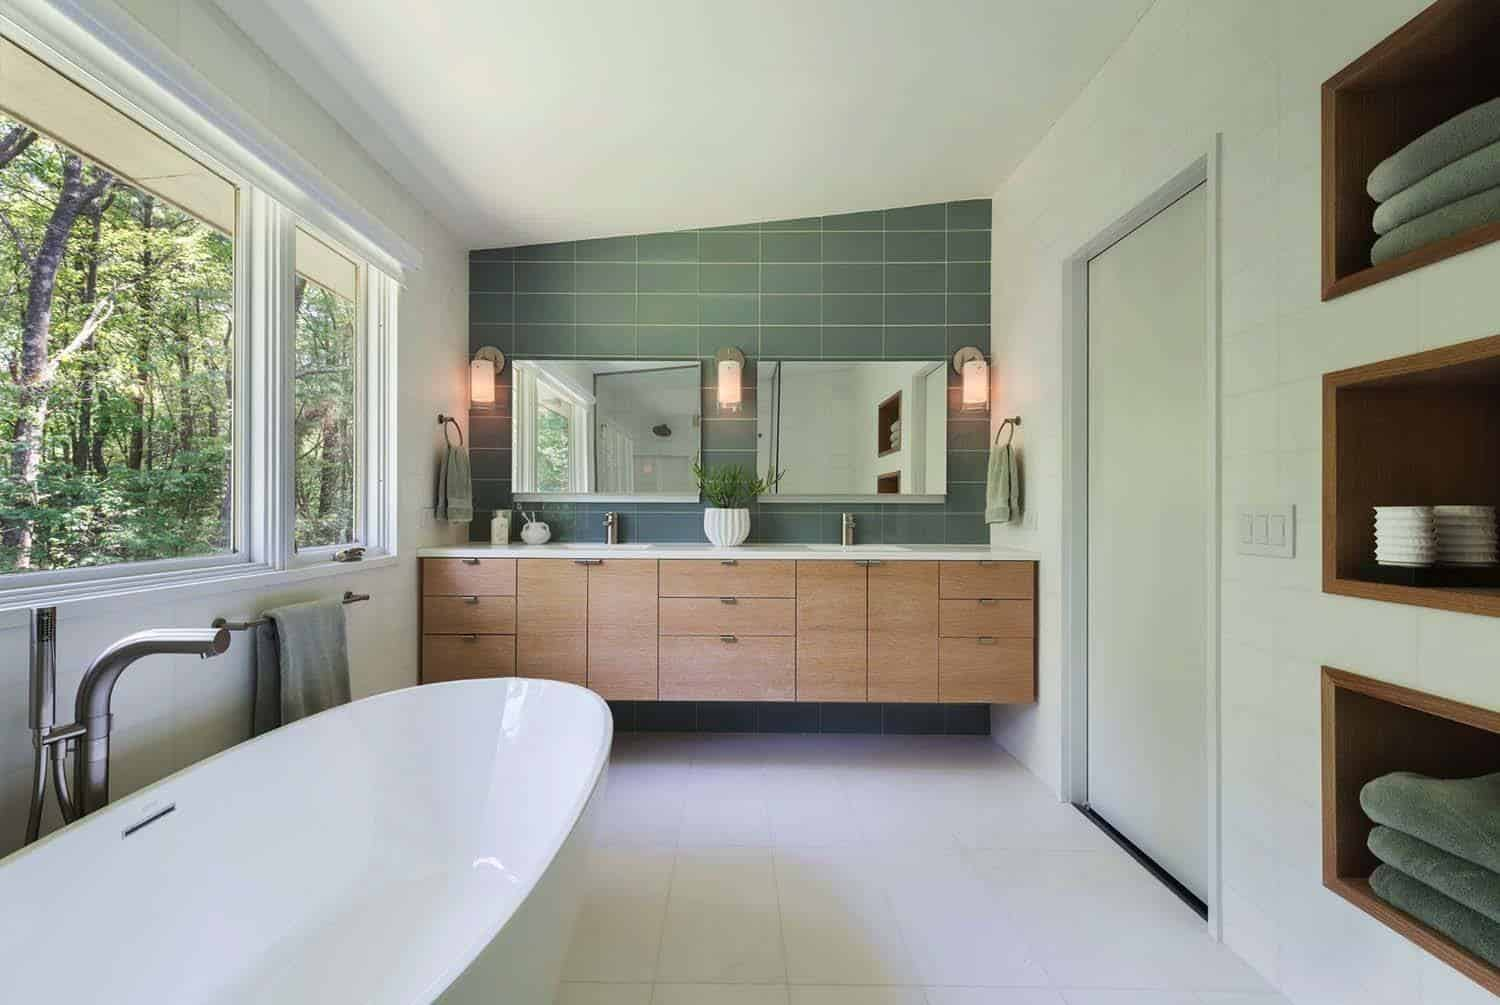 Amazing Midcentury Modern Bathrooms To Soak Your Senses - Best flooring for entire house